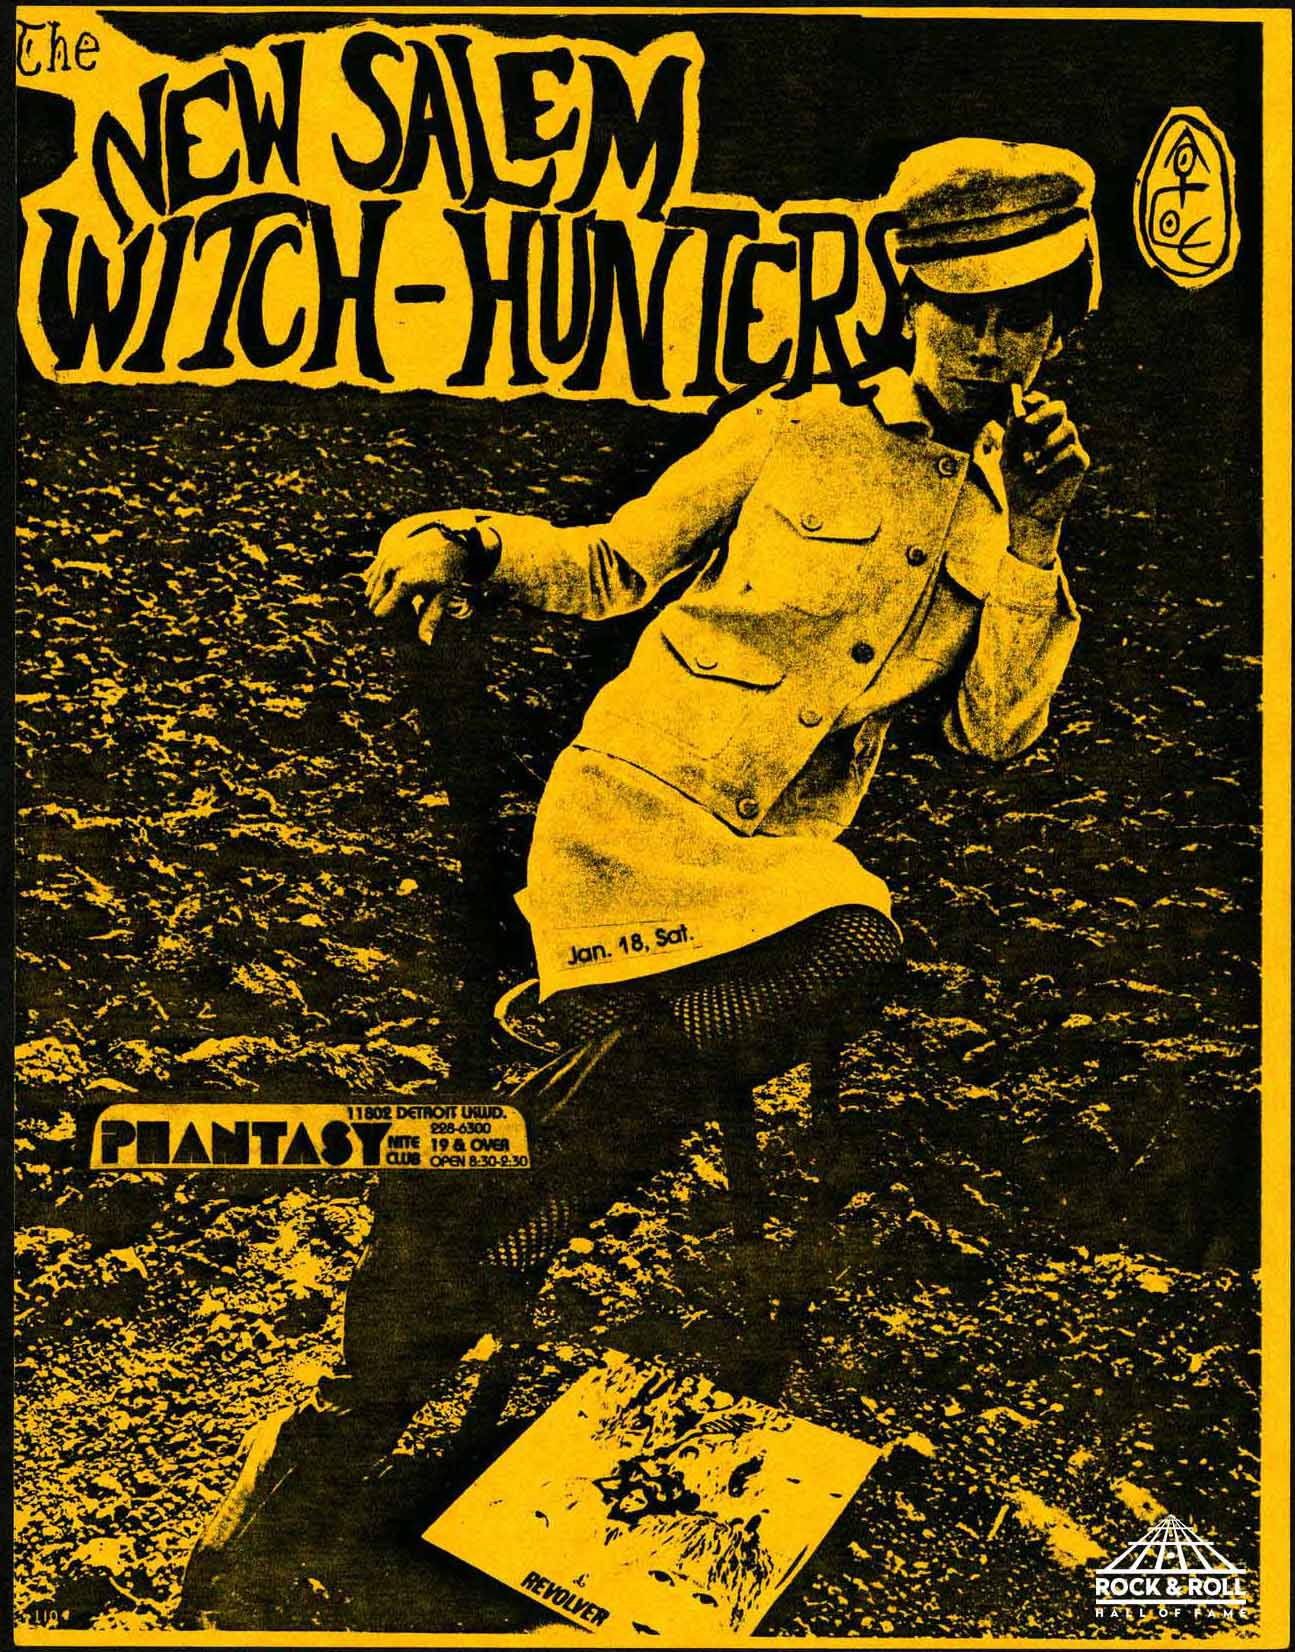 New Salem Witch-Hunters flyer